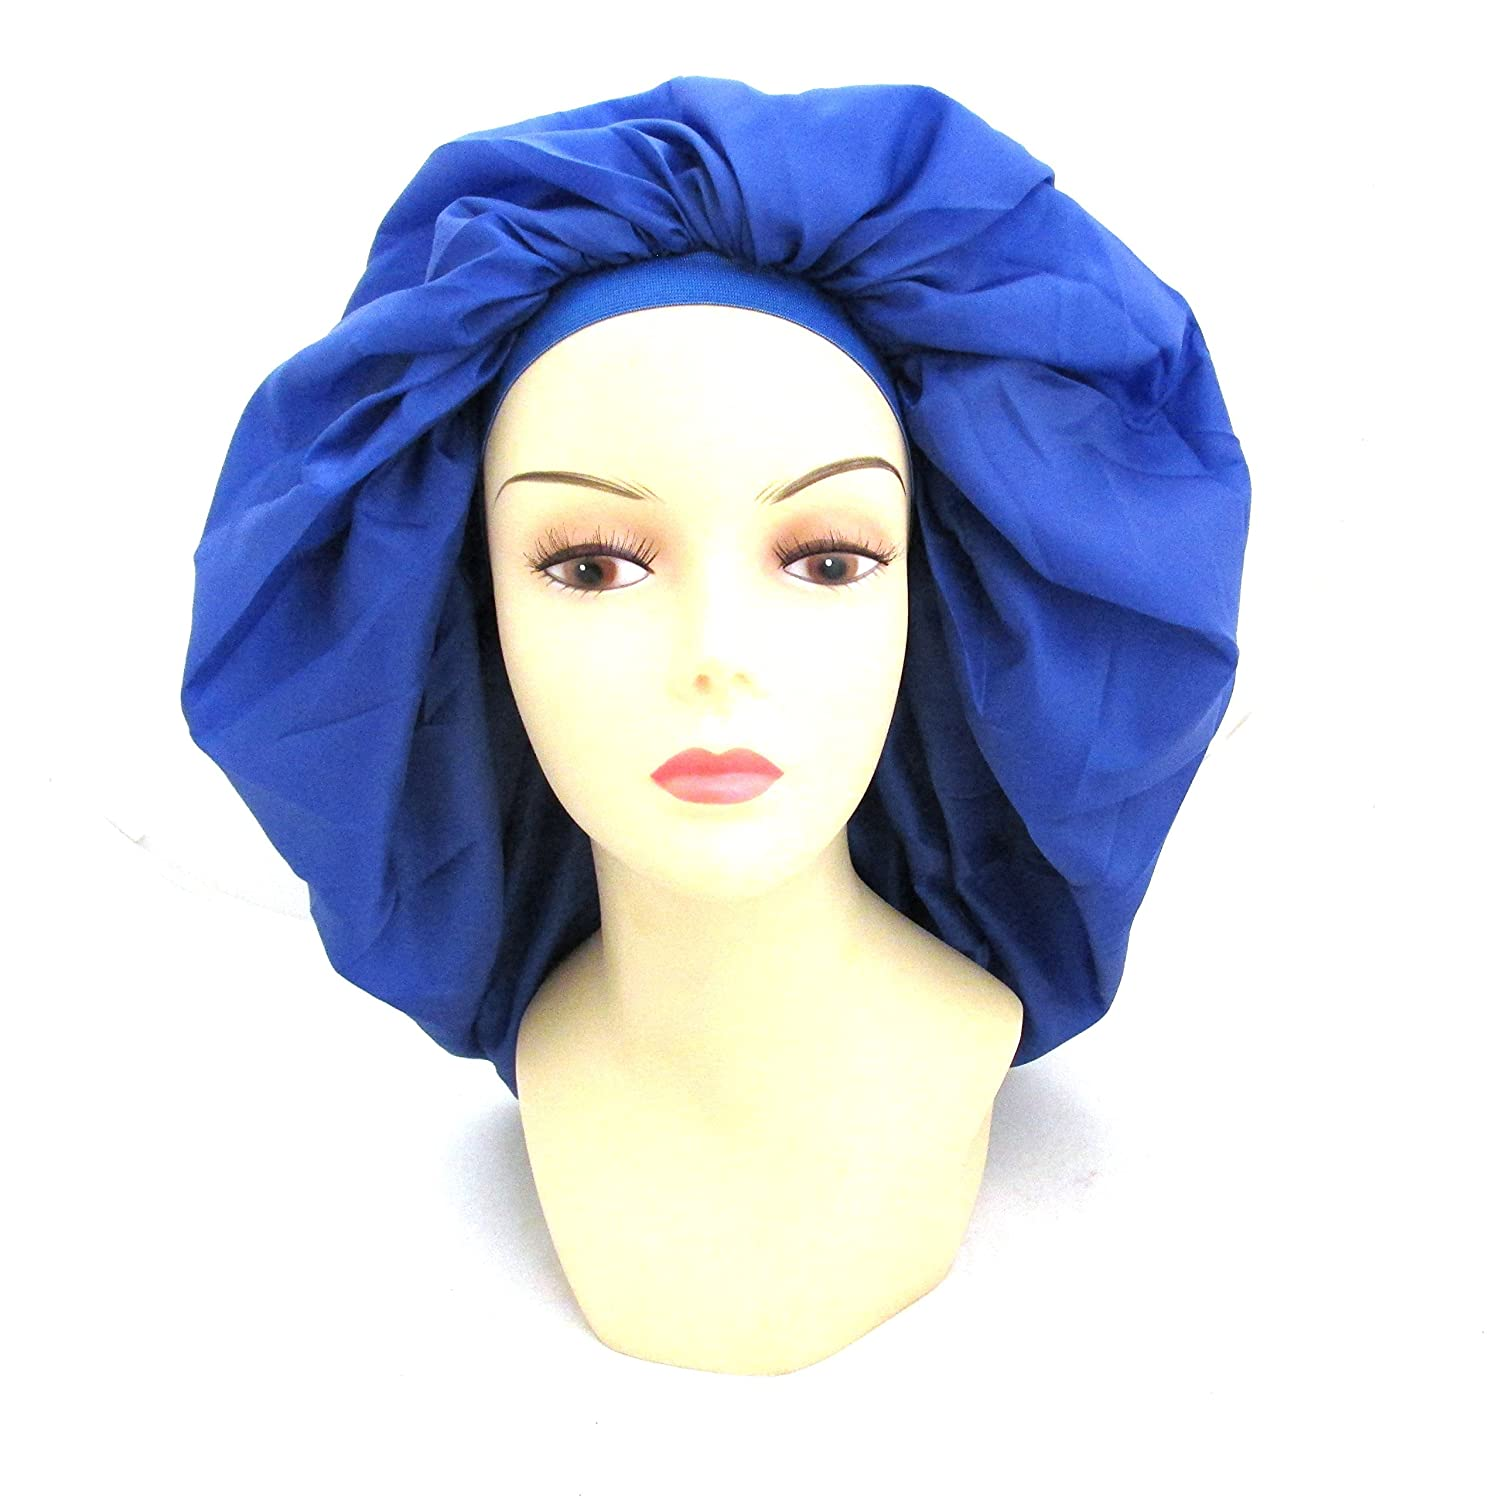 Dream Super Jumbo Night & Day Cap - Blue, Satin, fabric, elastic band, cotton, holds hair in place, large, extra large, one size fits all, sleep cap, comfortable, soft material by Dream